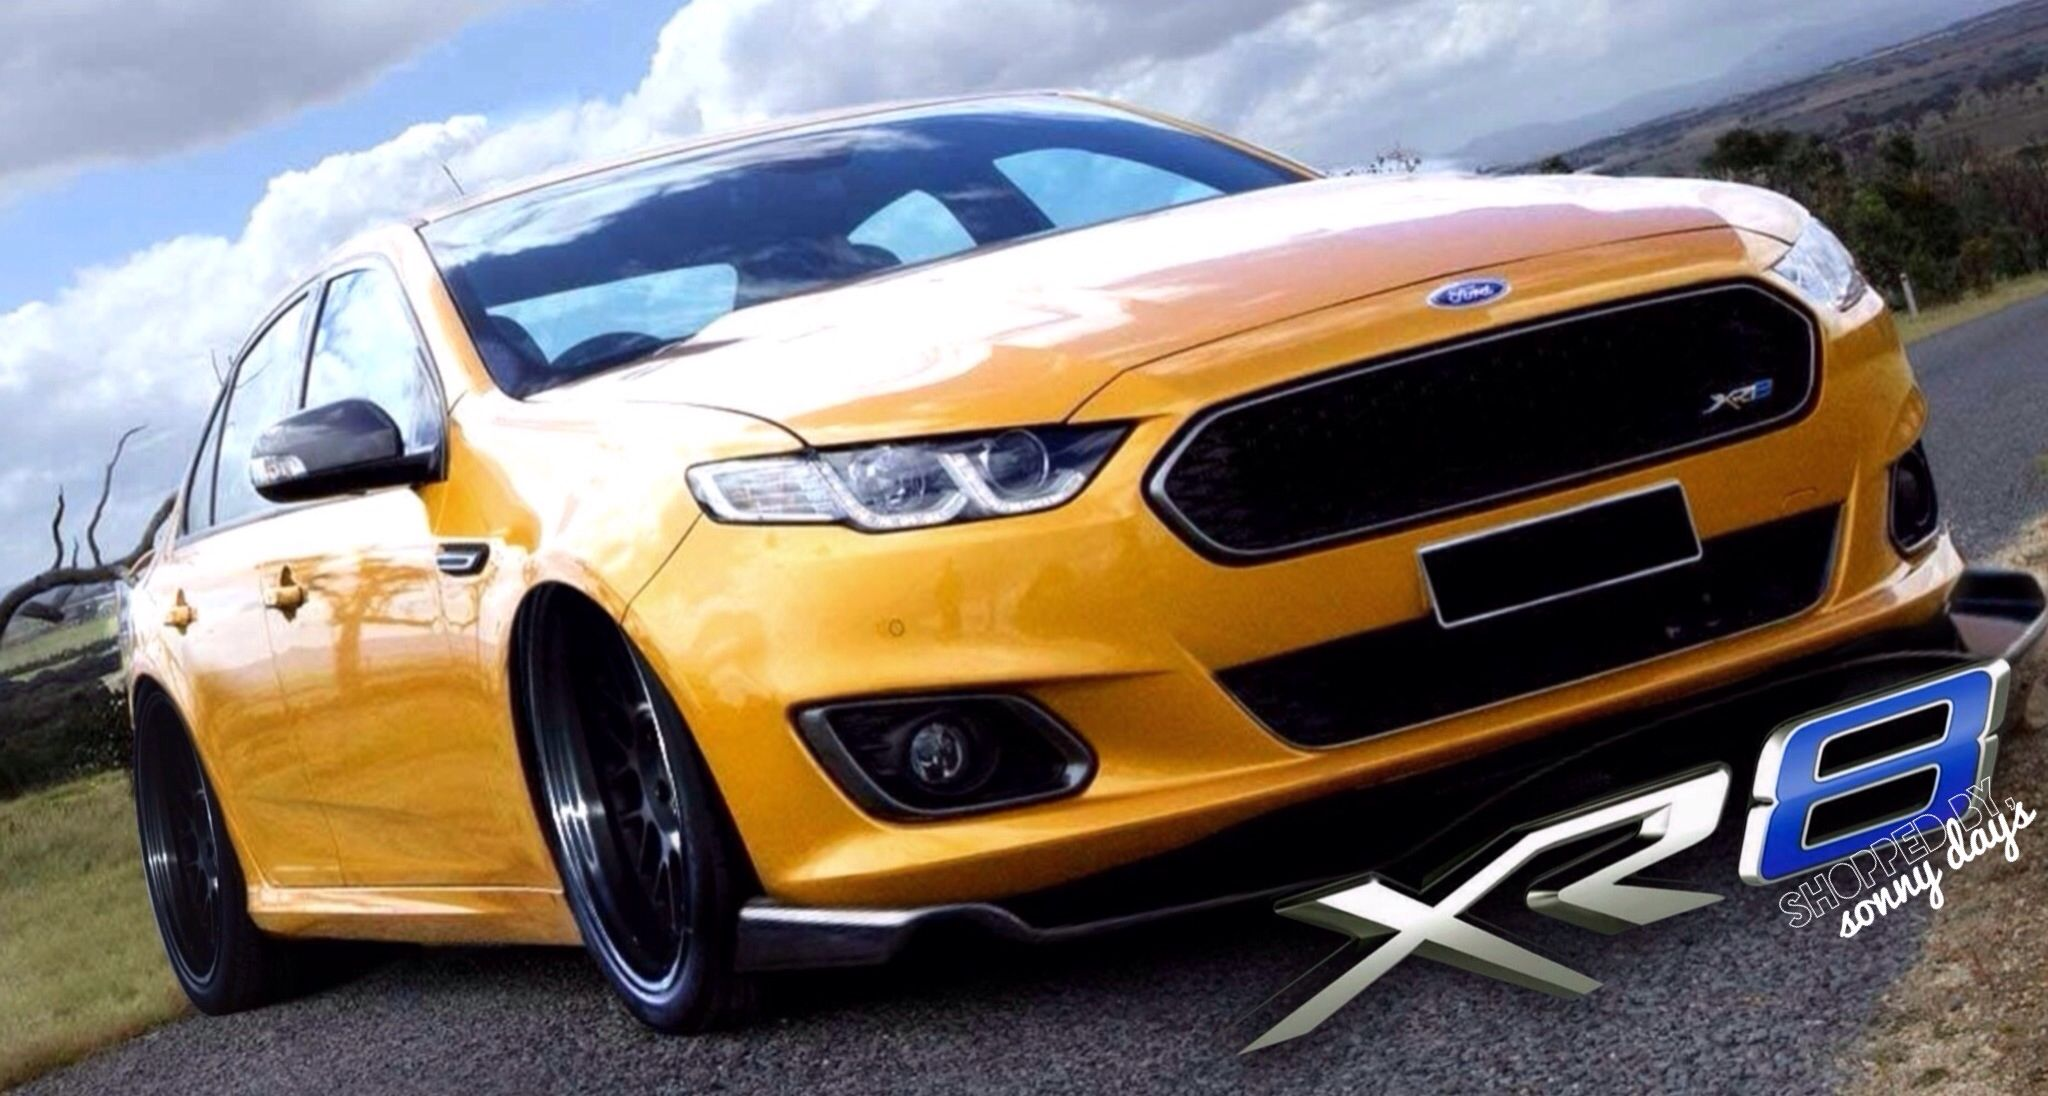 Ford Falcon Fgx Xr8 Australian Cars Australian Muscle Cars All